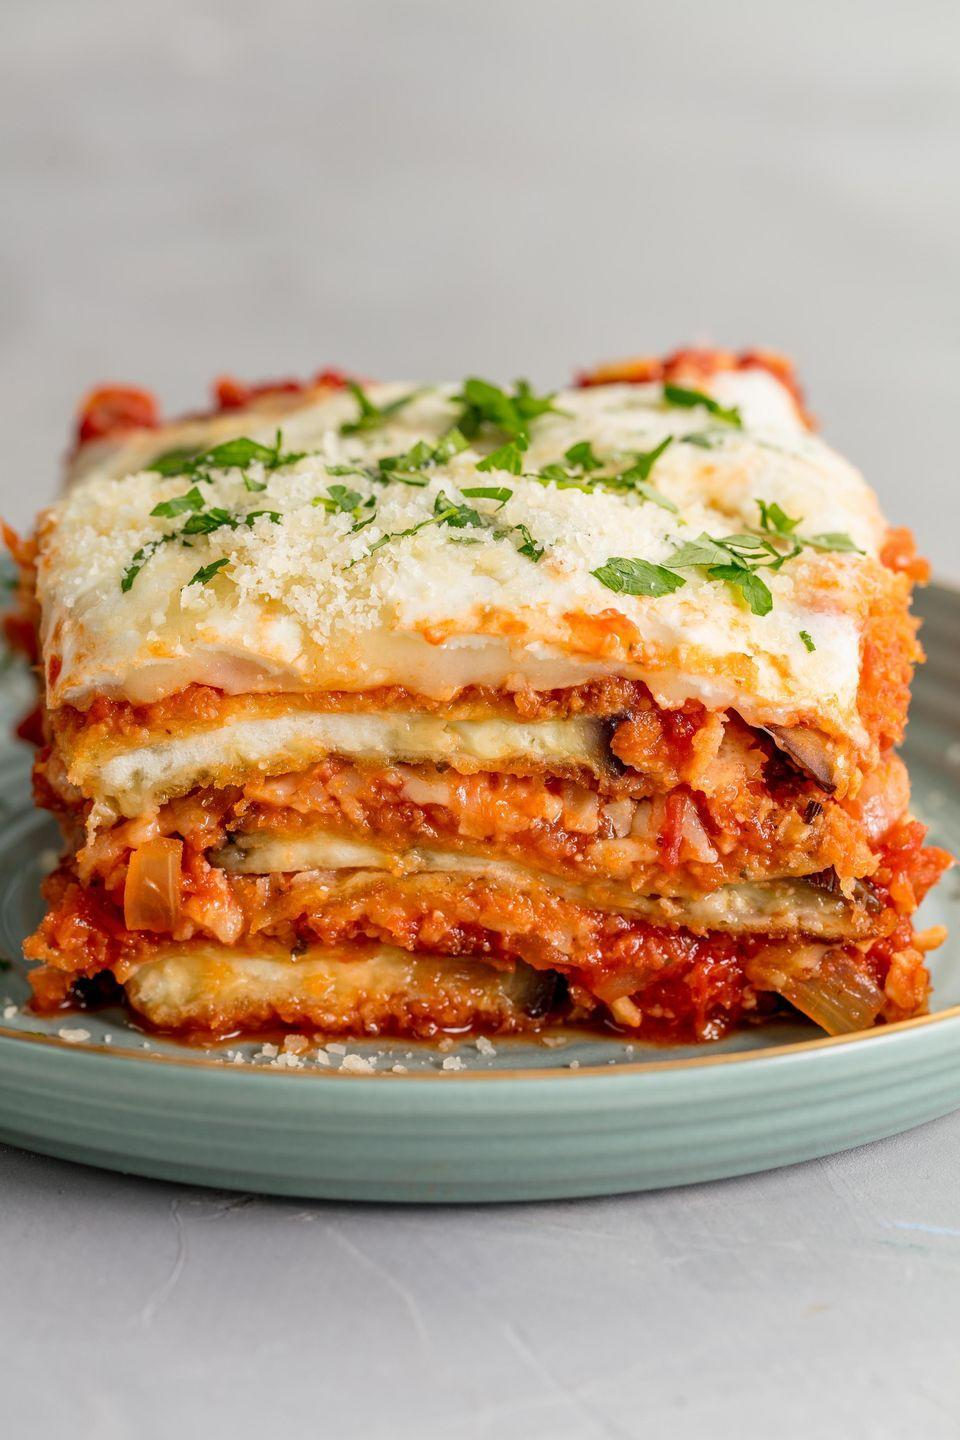 """<p>We promise every step is worth it.</p><p>Get the recipe from <a href=""""https://www.delish.com/cooking/recipe-ideas/recipes/a58245/easy-baked-eggplant-parmesan-recipe/"""" rel=""""nofollow noopener"""" target=""""_blank"""" data-ylk=""""slk:Delish"""" class=""""link rapid-noclick-resp"""">Delish</a>.</p>"""